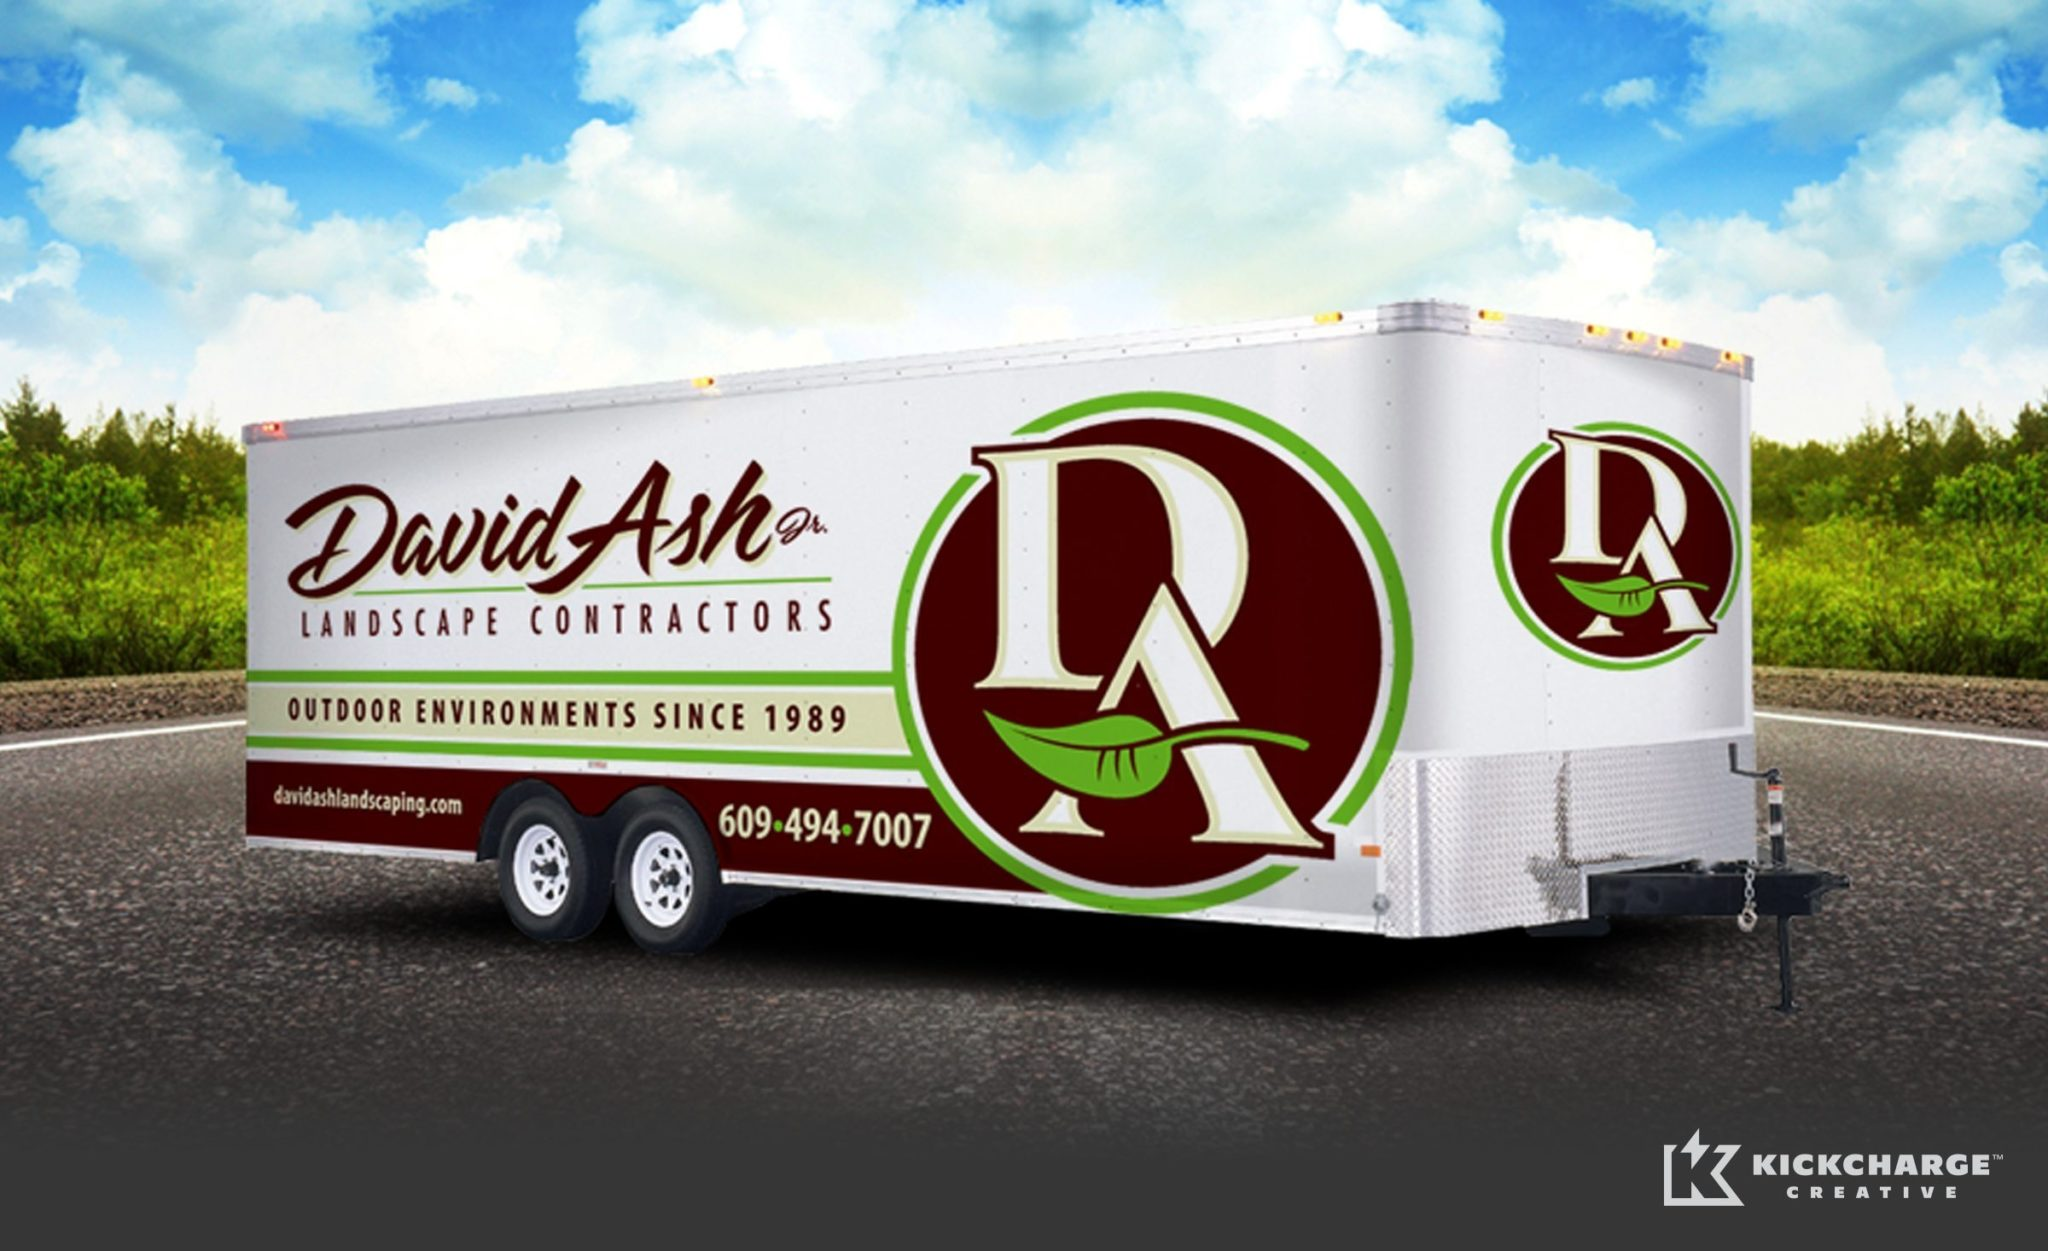 Trailer wrap design for a landscaping company in LBI, NJ.